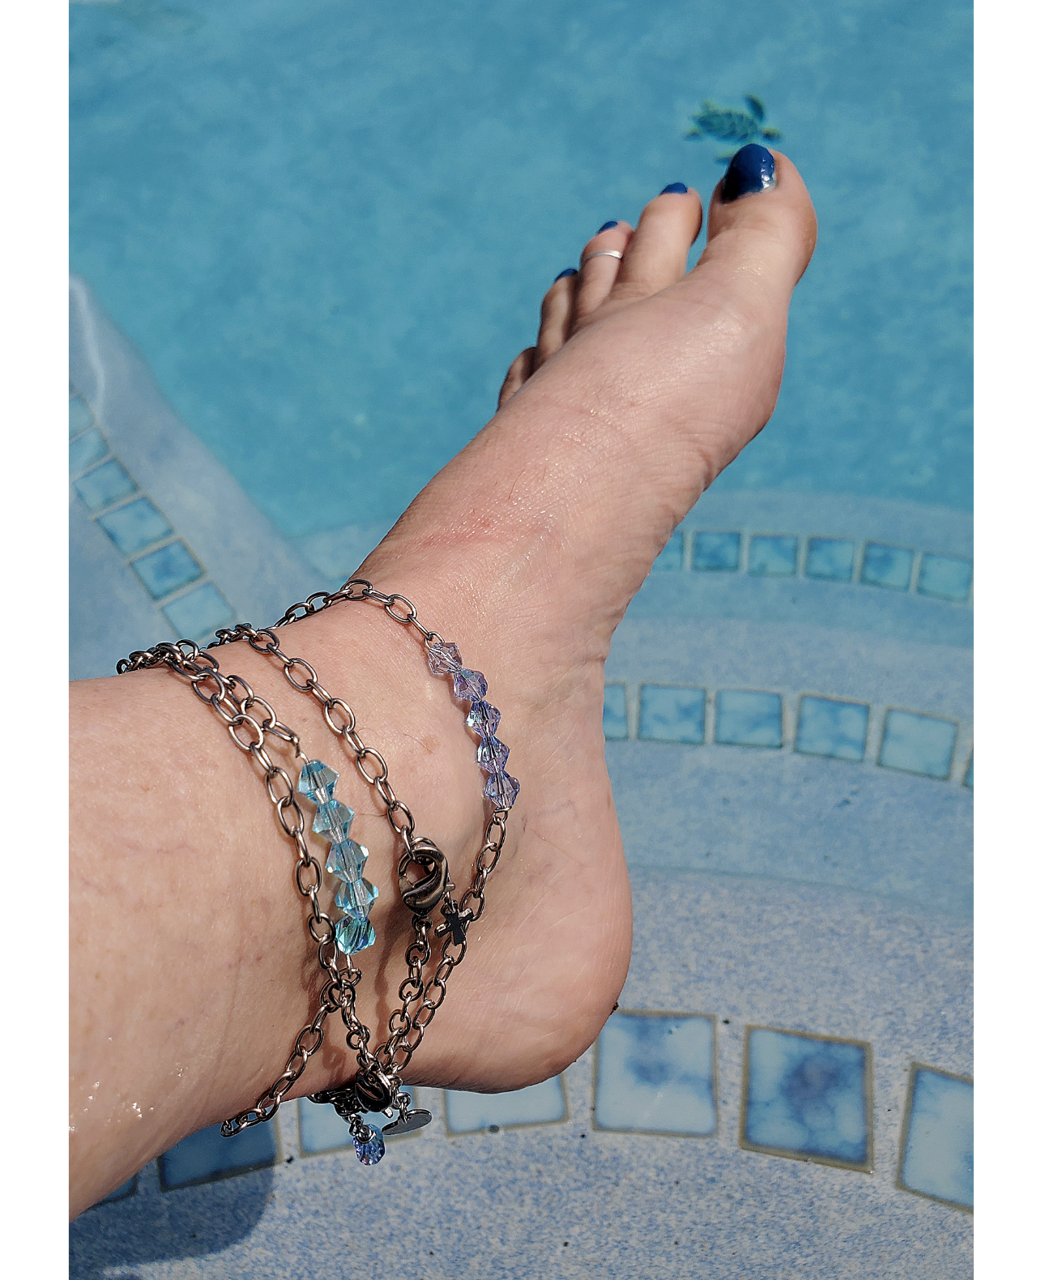 crystal chain anklets on foot in water